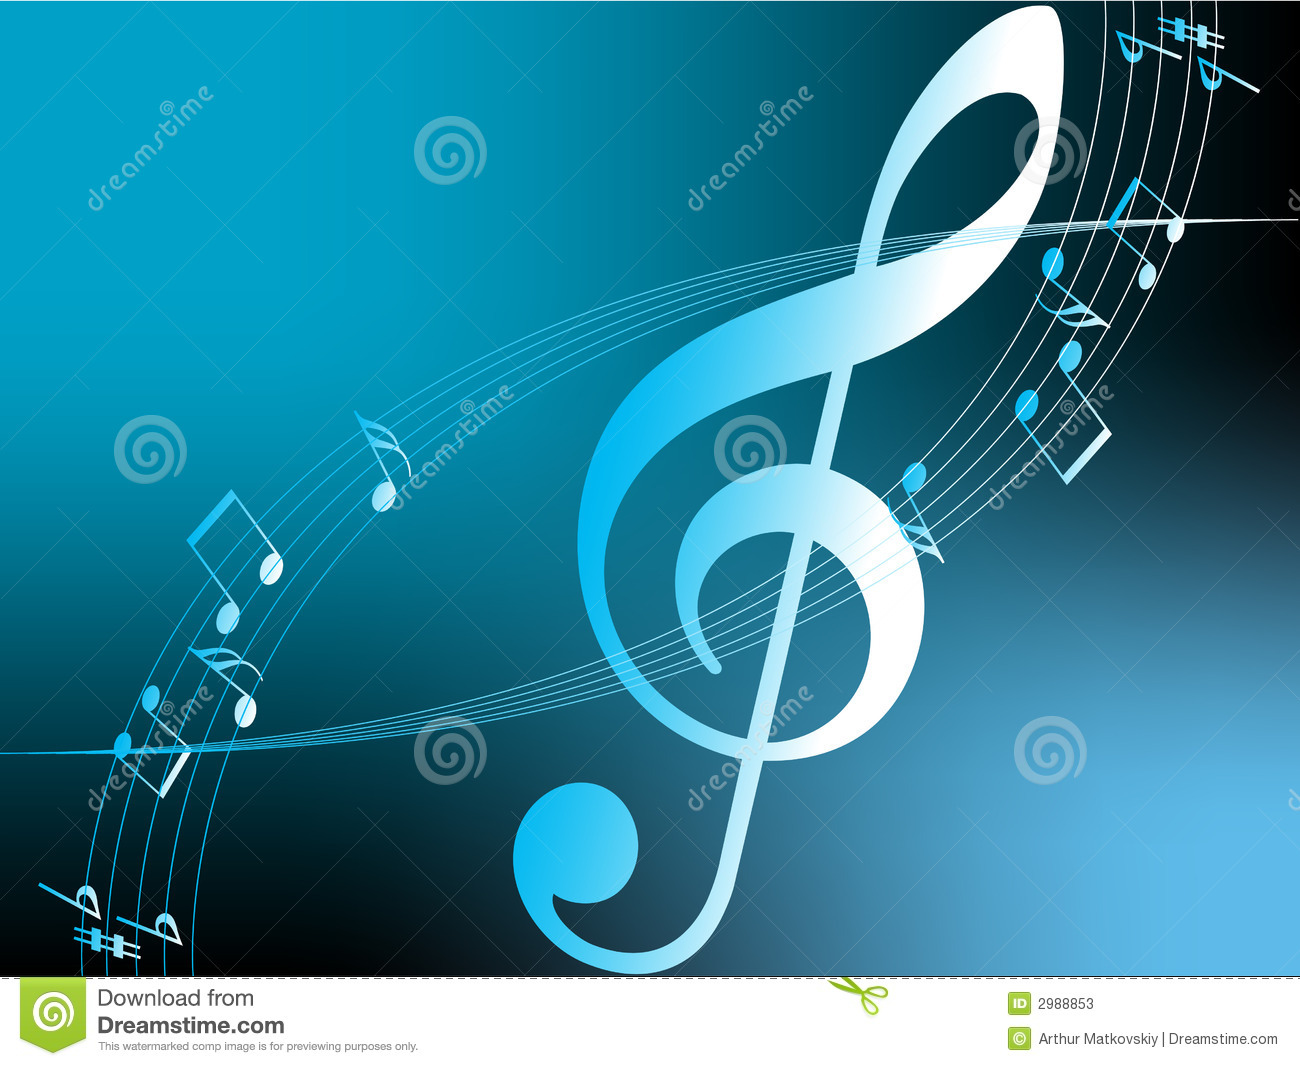 Flying notes, warm background